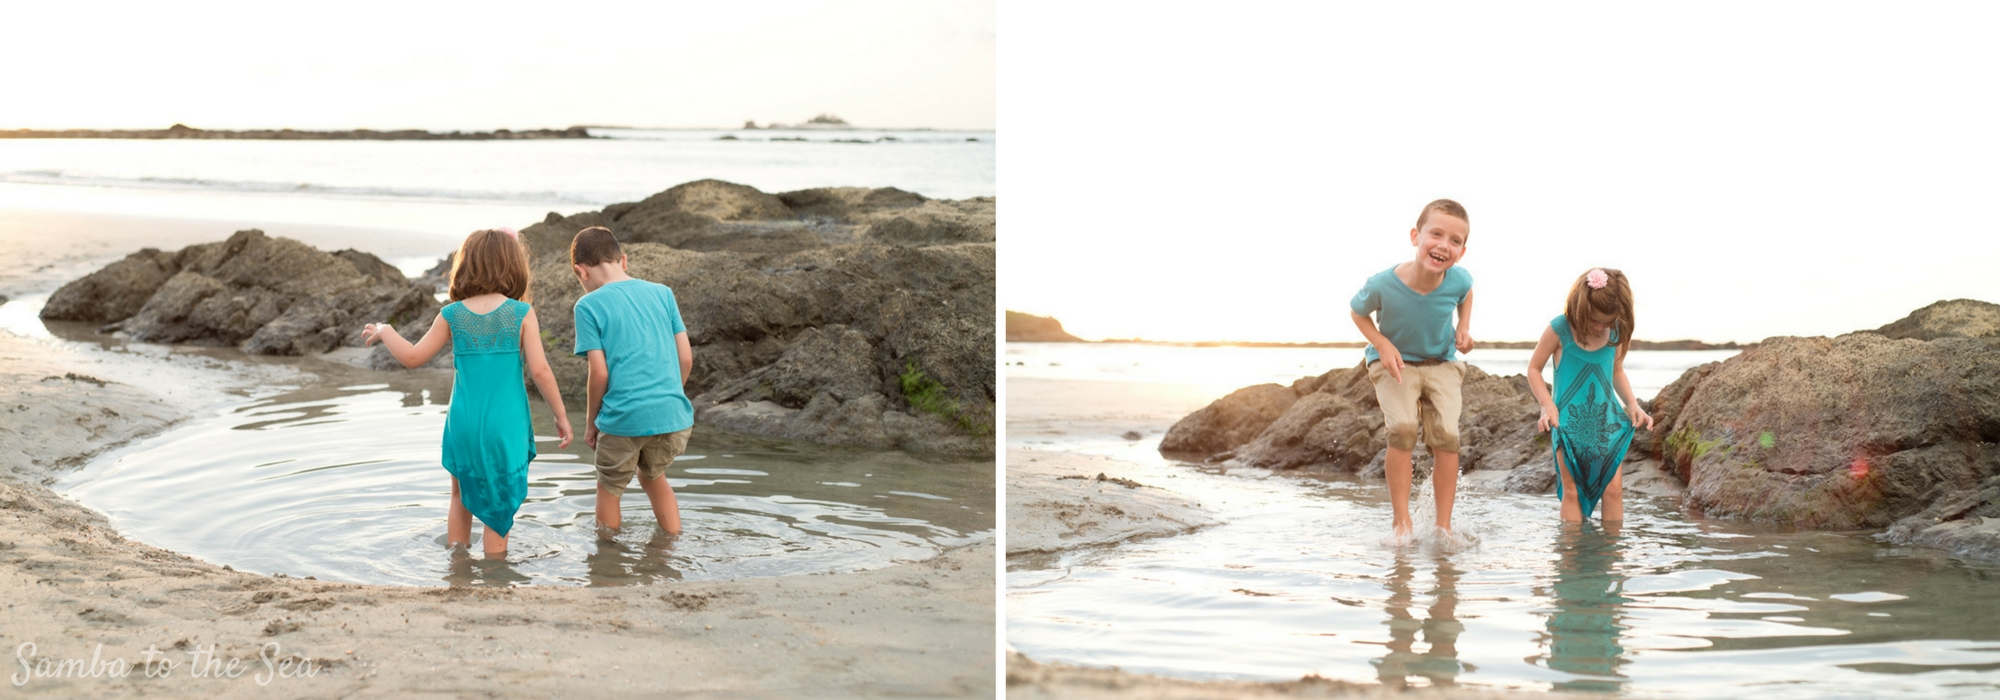 Siblings jumping in a low tide pool during family photos in Tamarindo, Costa Rica.